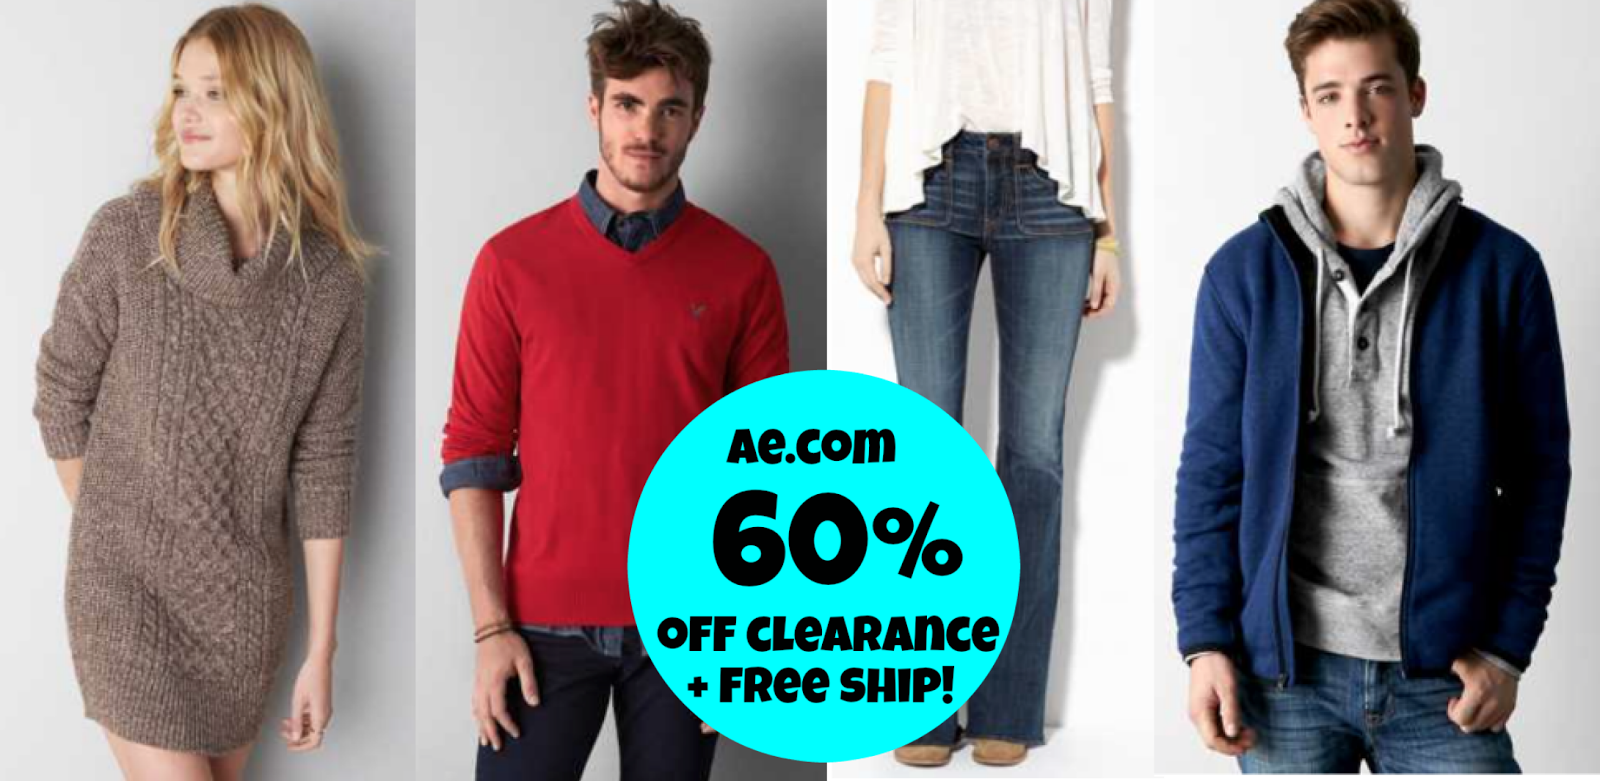 http://www.thebinderladies.com/2015/02/american-eagle-extra-60-off-clearance.html#.VOToSULduyM